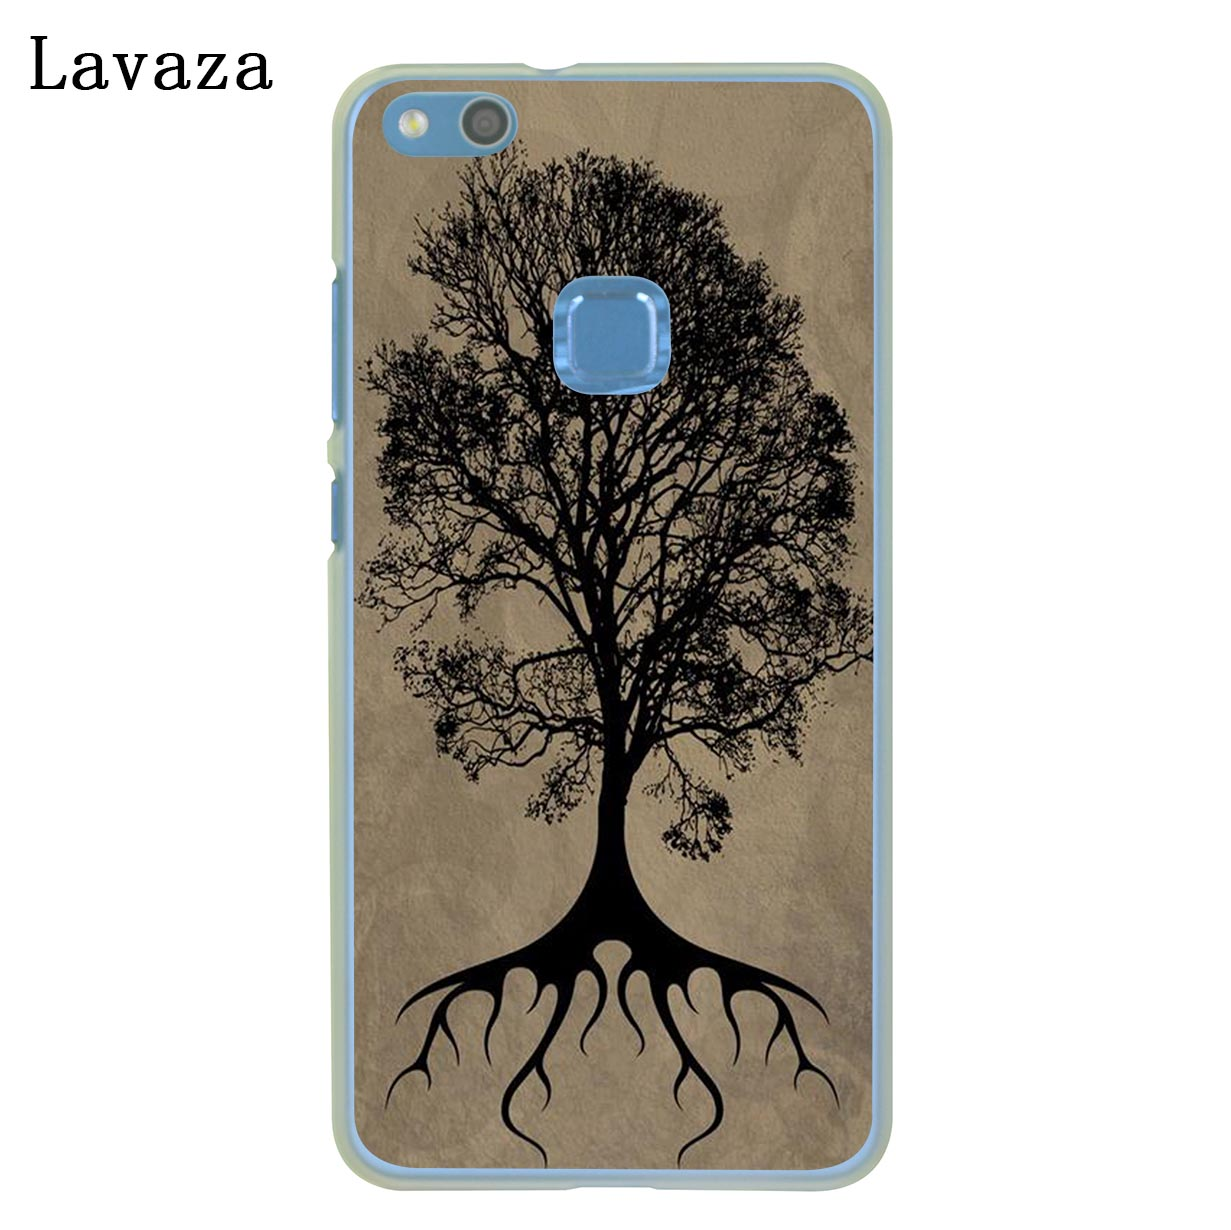 US $1 99 22% OFF|Lavaza Gustav Klimt Tree of Life Golden Tears Case for  Huawei Y7 Y6 Prime Y5 Y9 2018 Honor play 10 8 8C 8X 9 Lite 7C 7X 7A Pro-in